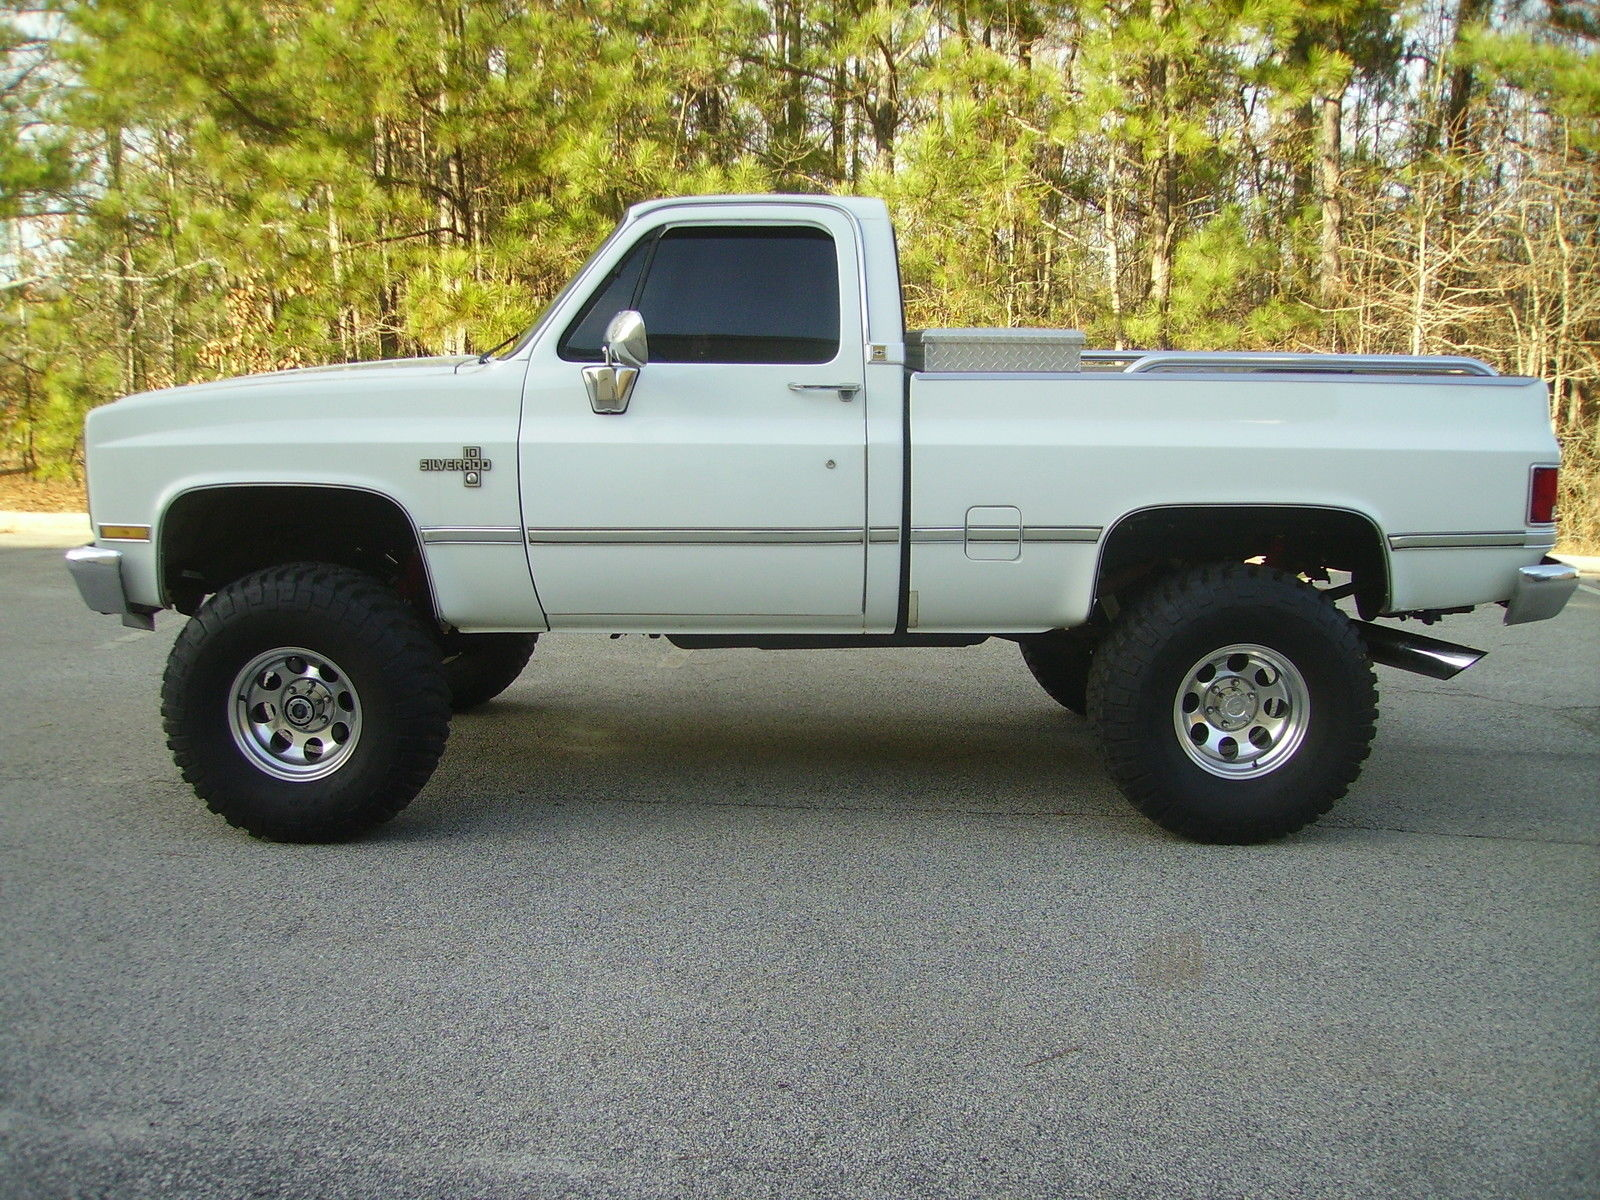 Chevy Trucks For Sale Craigslist >> 1987 Chevy Silverado 4X4 SWB Truck 350 FI Engine P/S P/B A/C Heat New Tires NICE - Classic ...